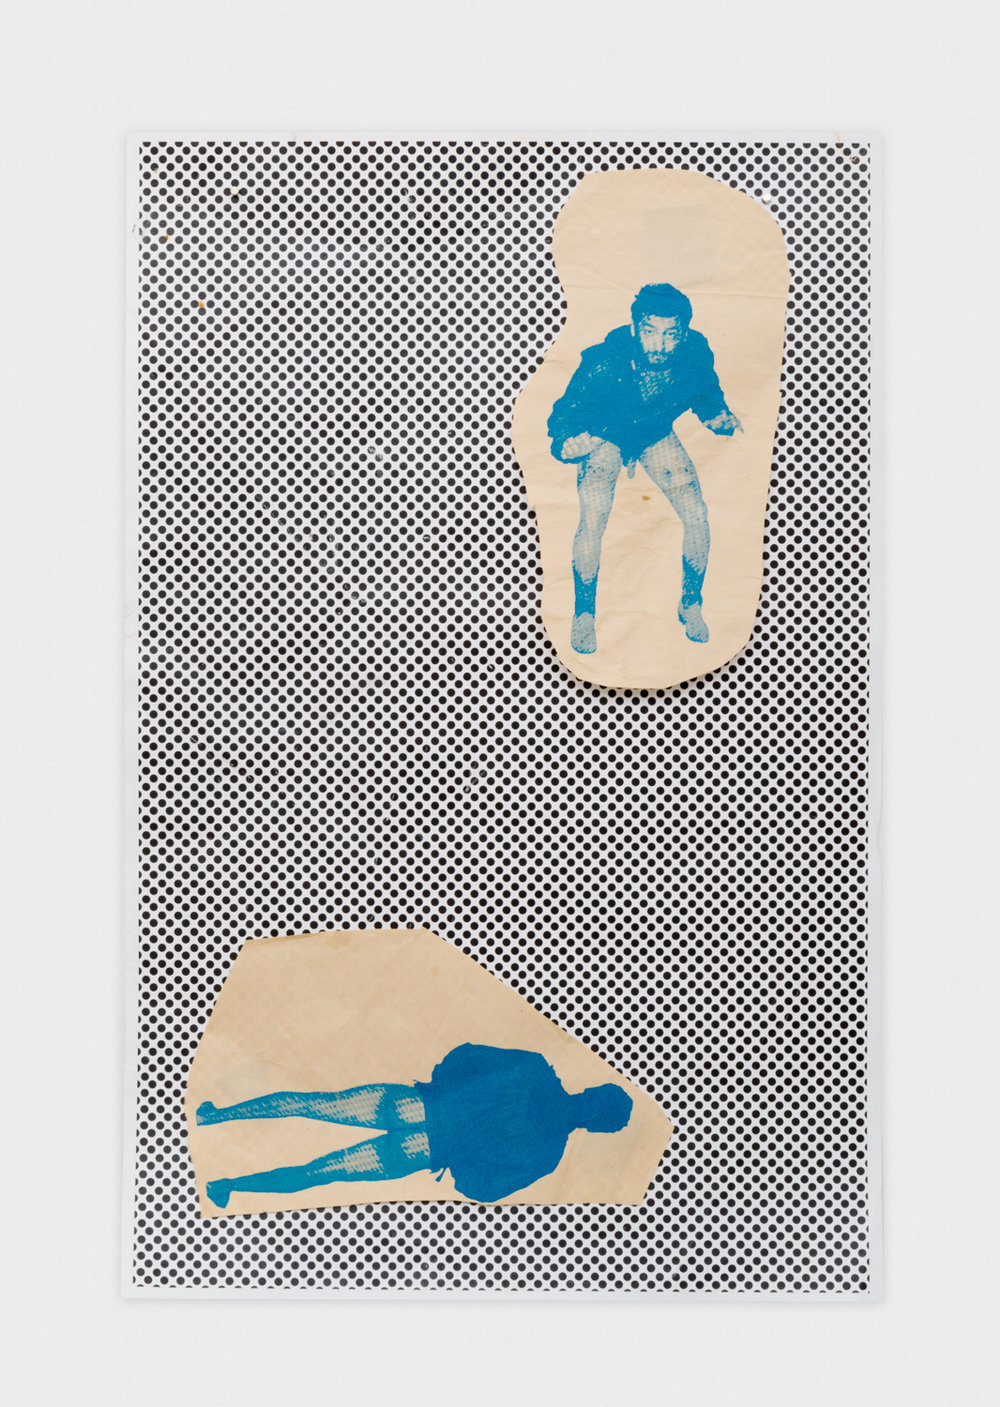 Alex Becerra  Front and Back Cowboy (Dots)  2014 Silkscreen on newsprint and xerox copy 17h x 11w in AB224